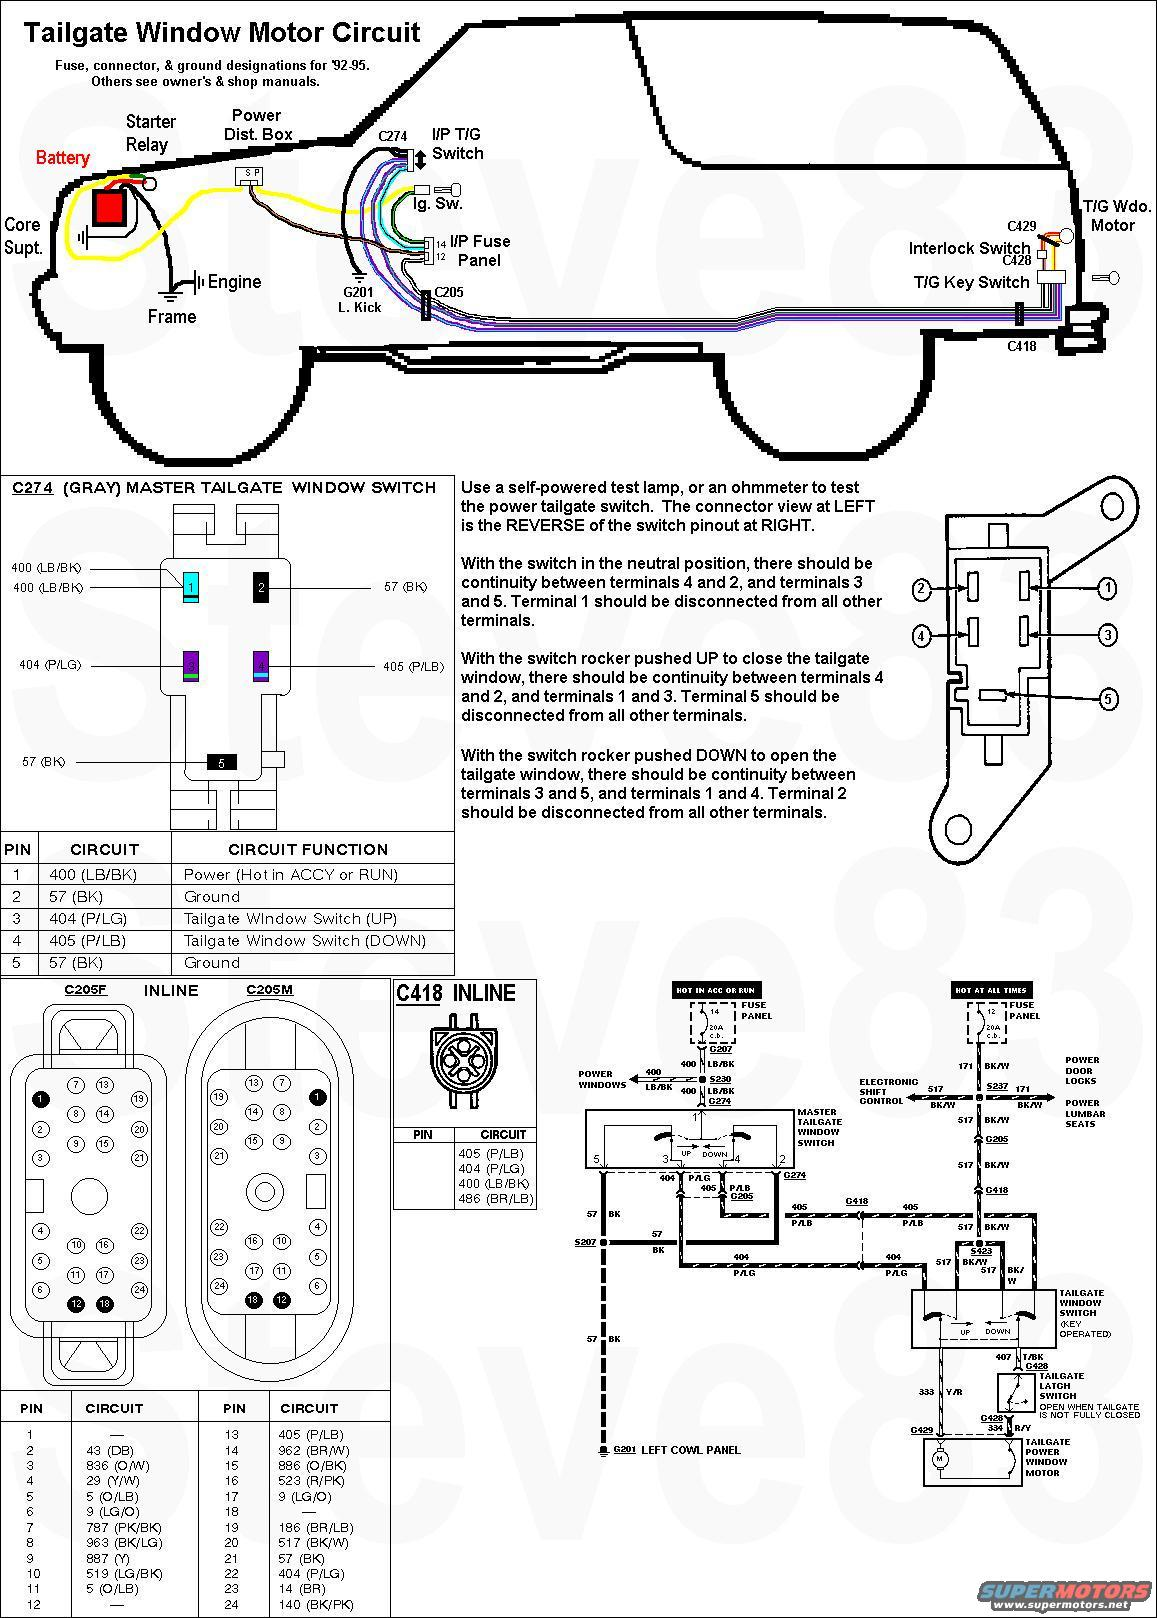 wiring diagram for 1990 ford bronco